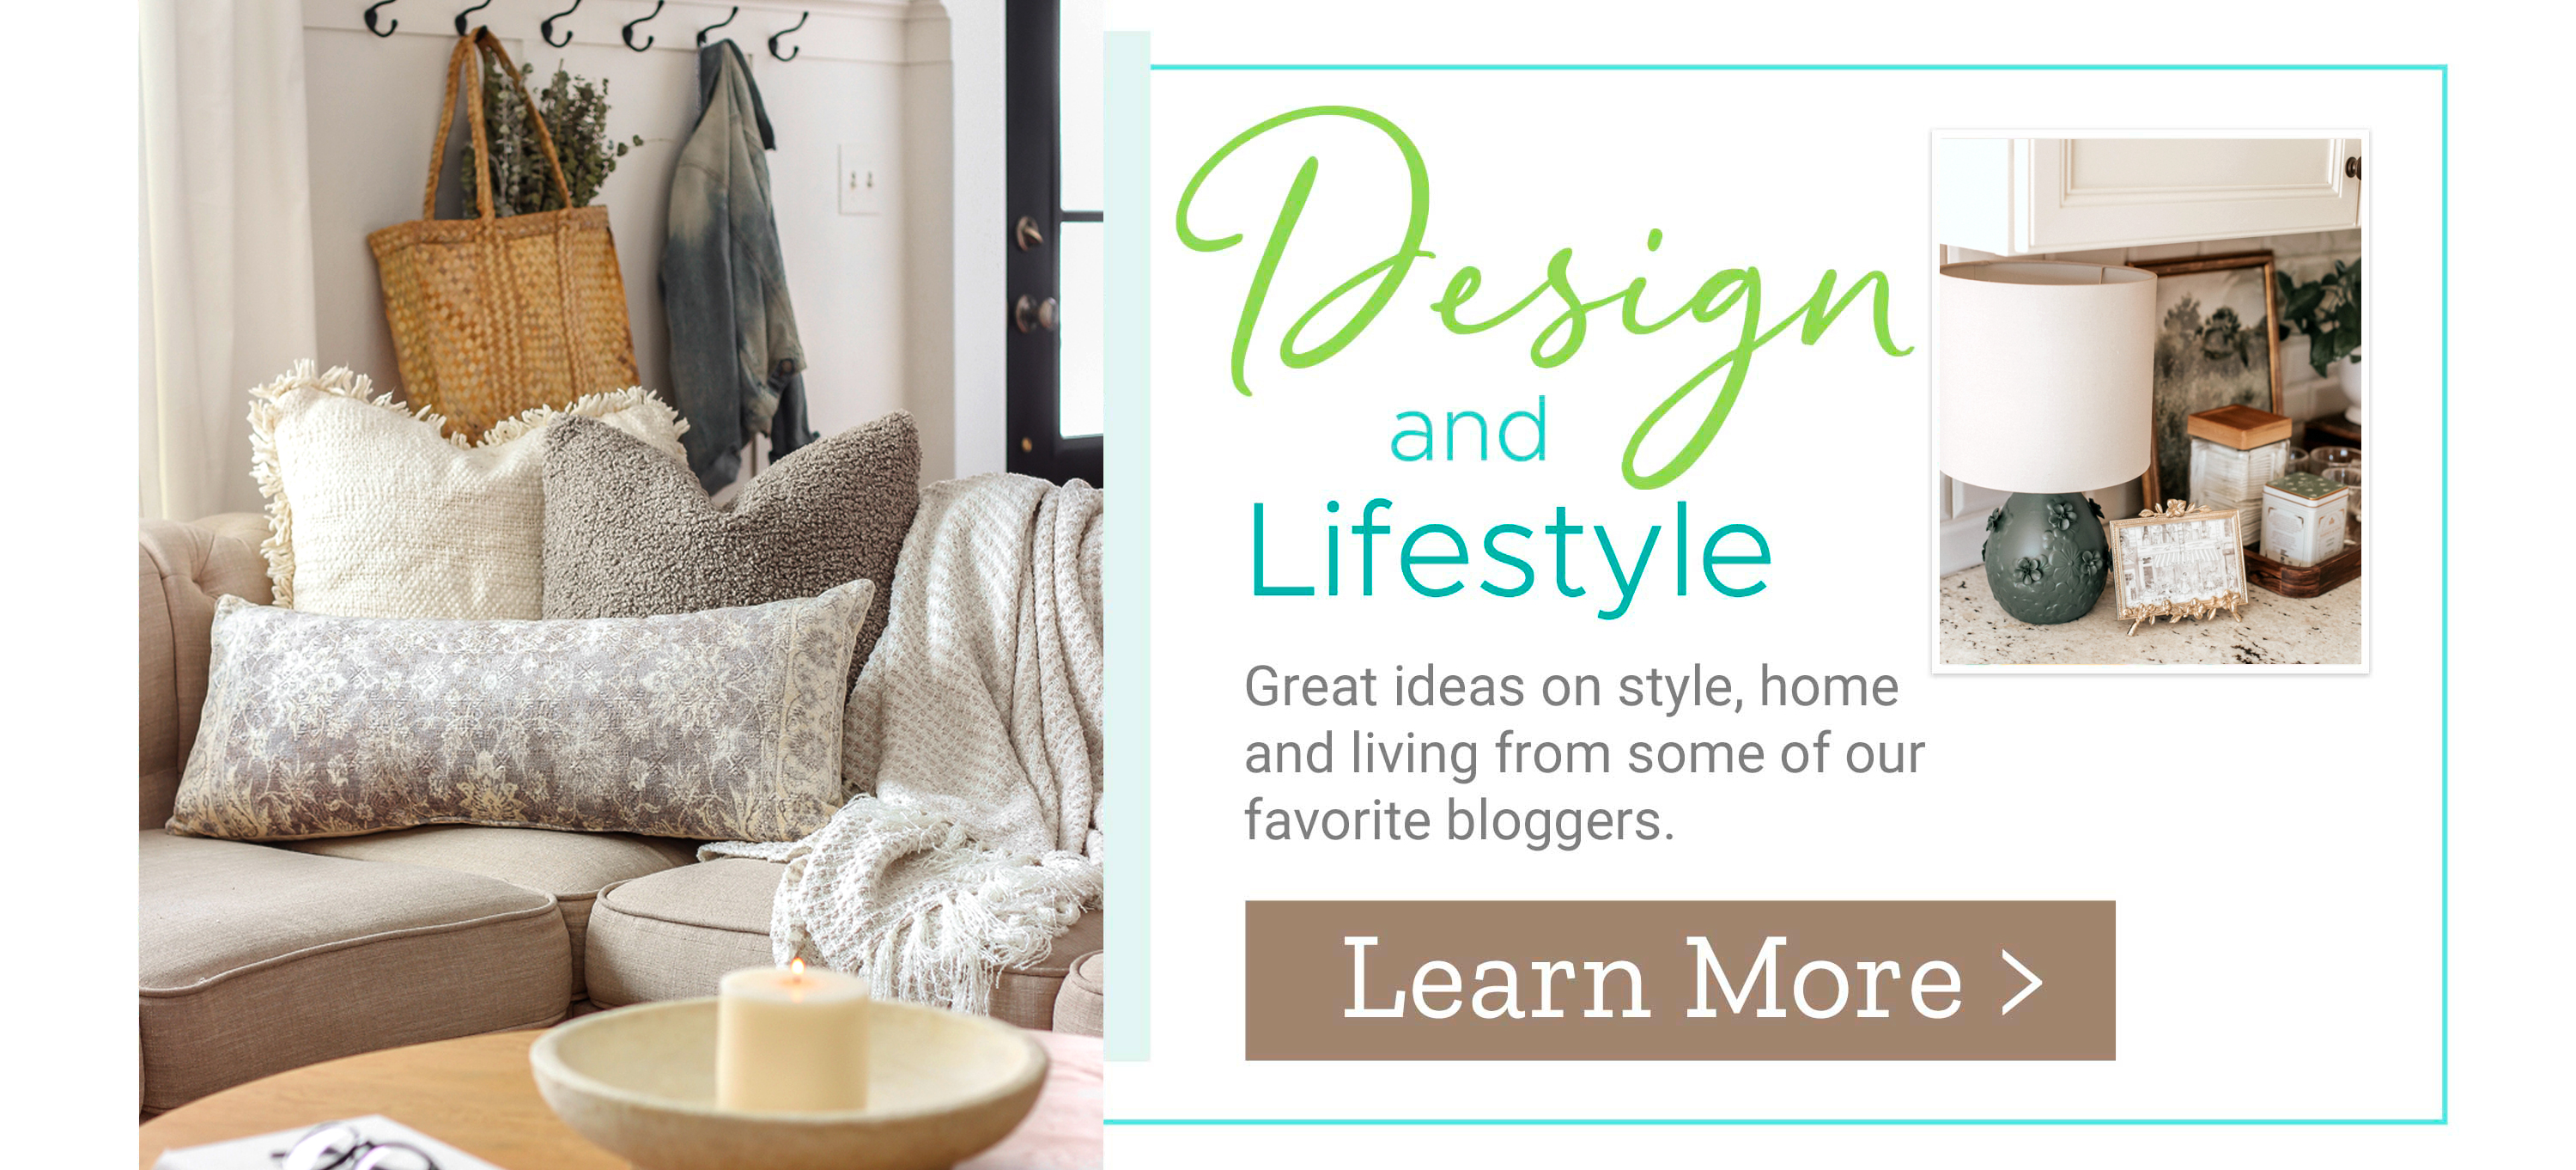 Design and Lifestyle - Great ideas on style, home and living from some of our favorite bloggers. Learn More >